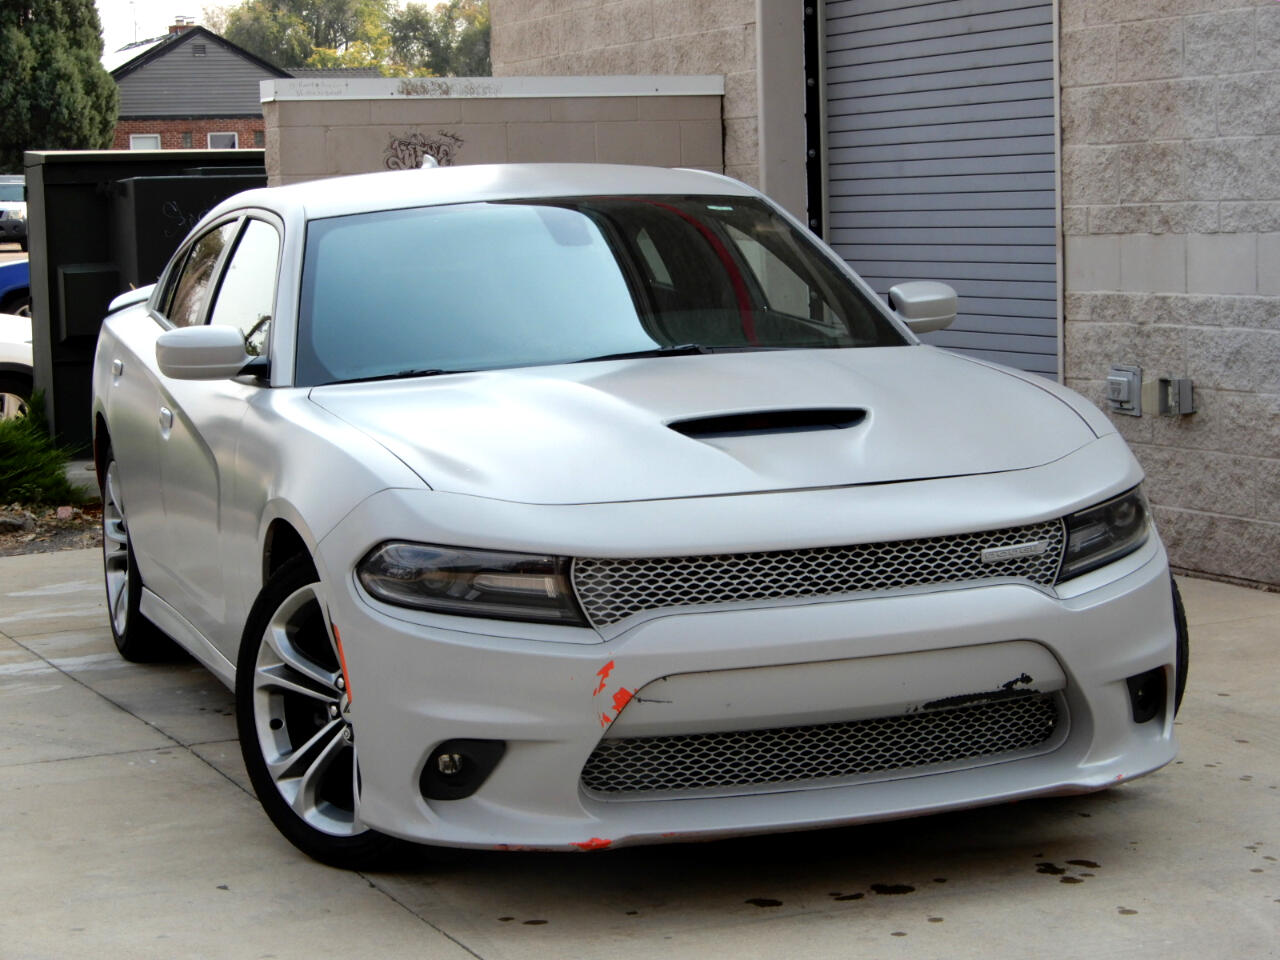 Dodge Charger R/T RWD 2020